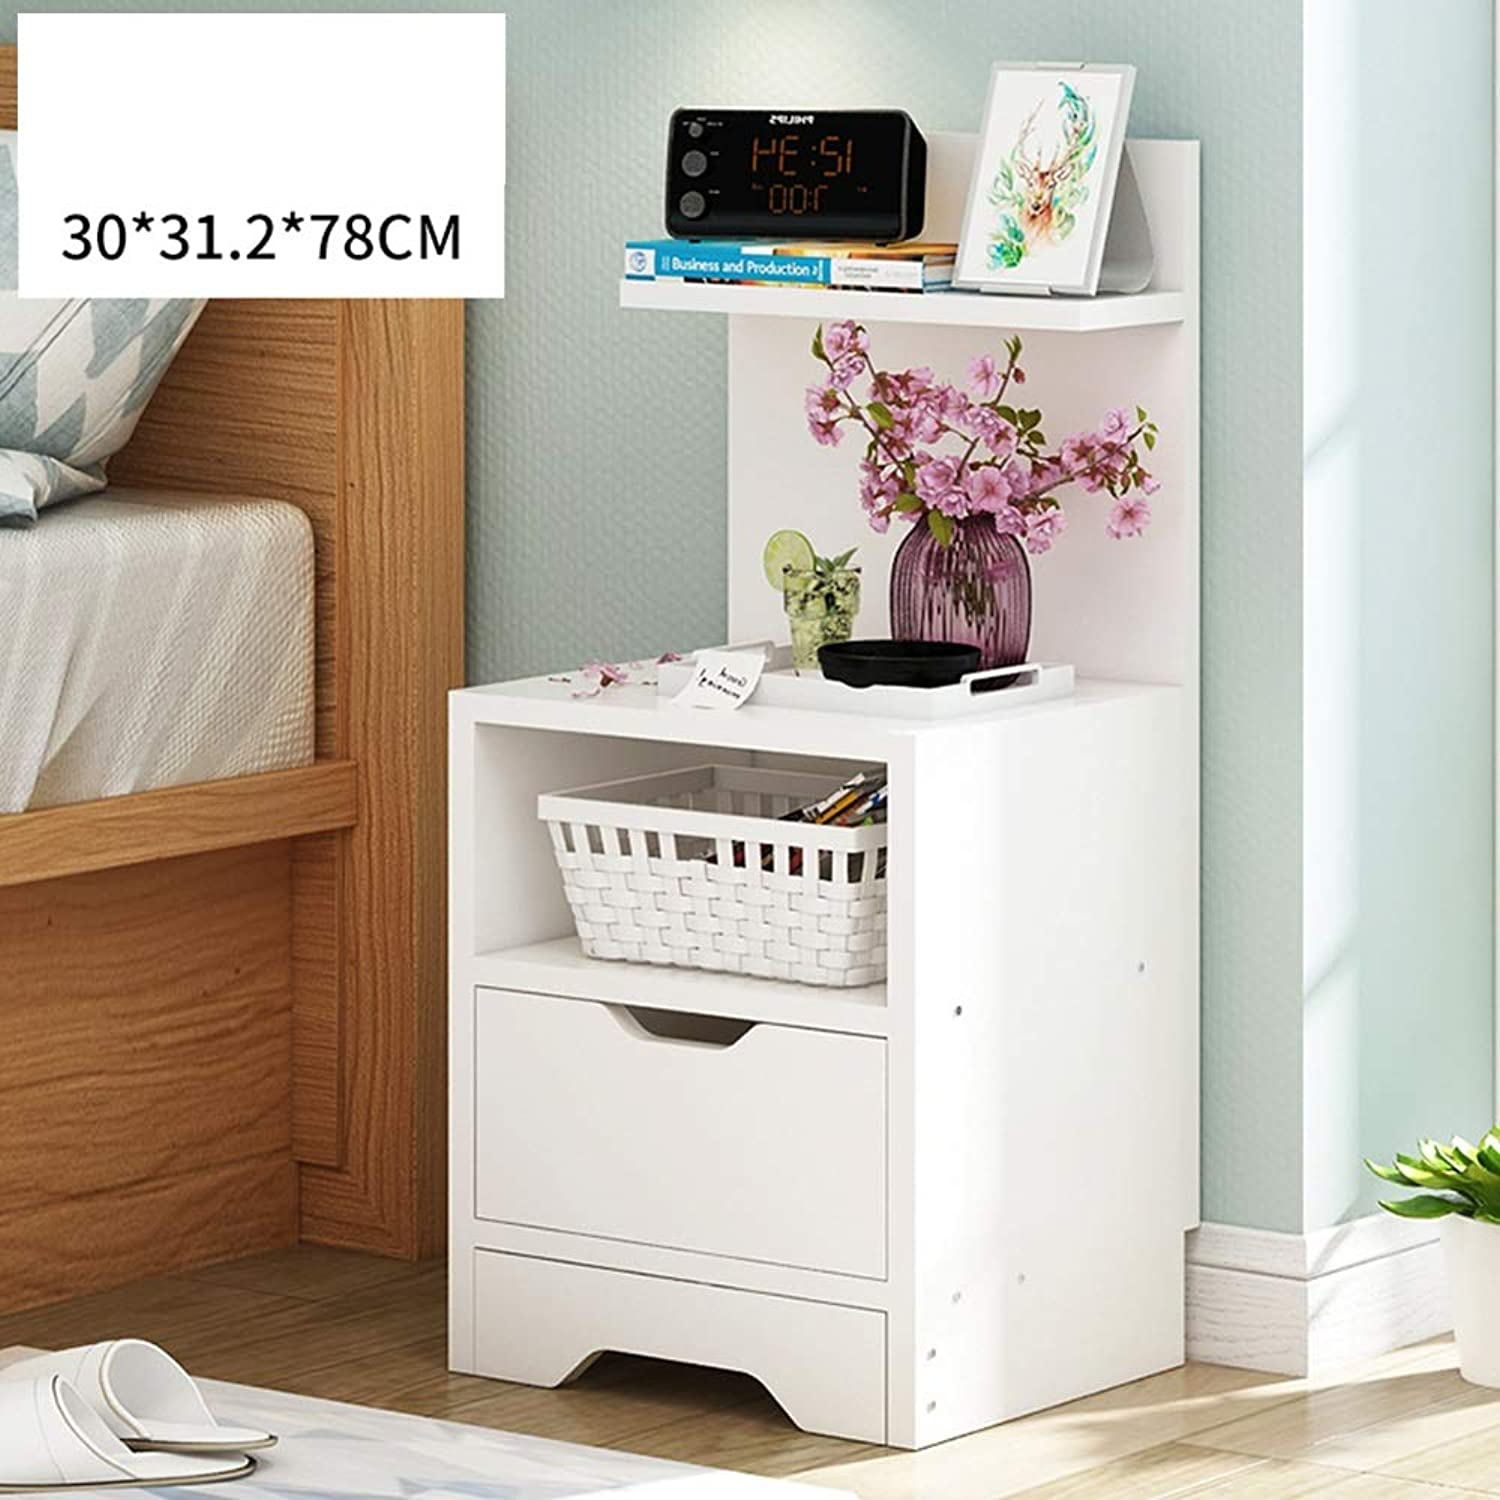 ZHIRONG Bedside Table Side Table Storage Cabinet Lockers Telephone Table Bookshelf Be Applicable Bedroom Living Room (color   White)